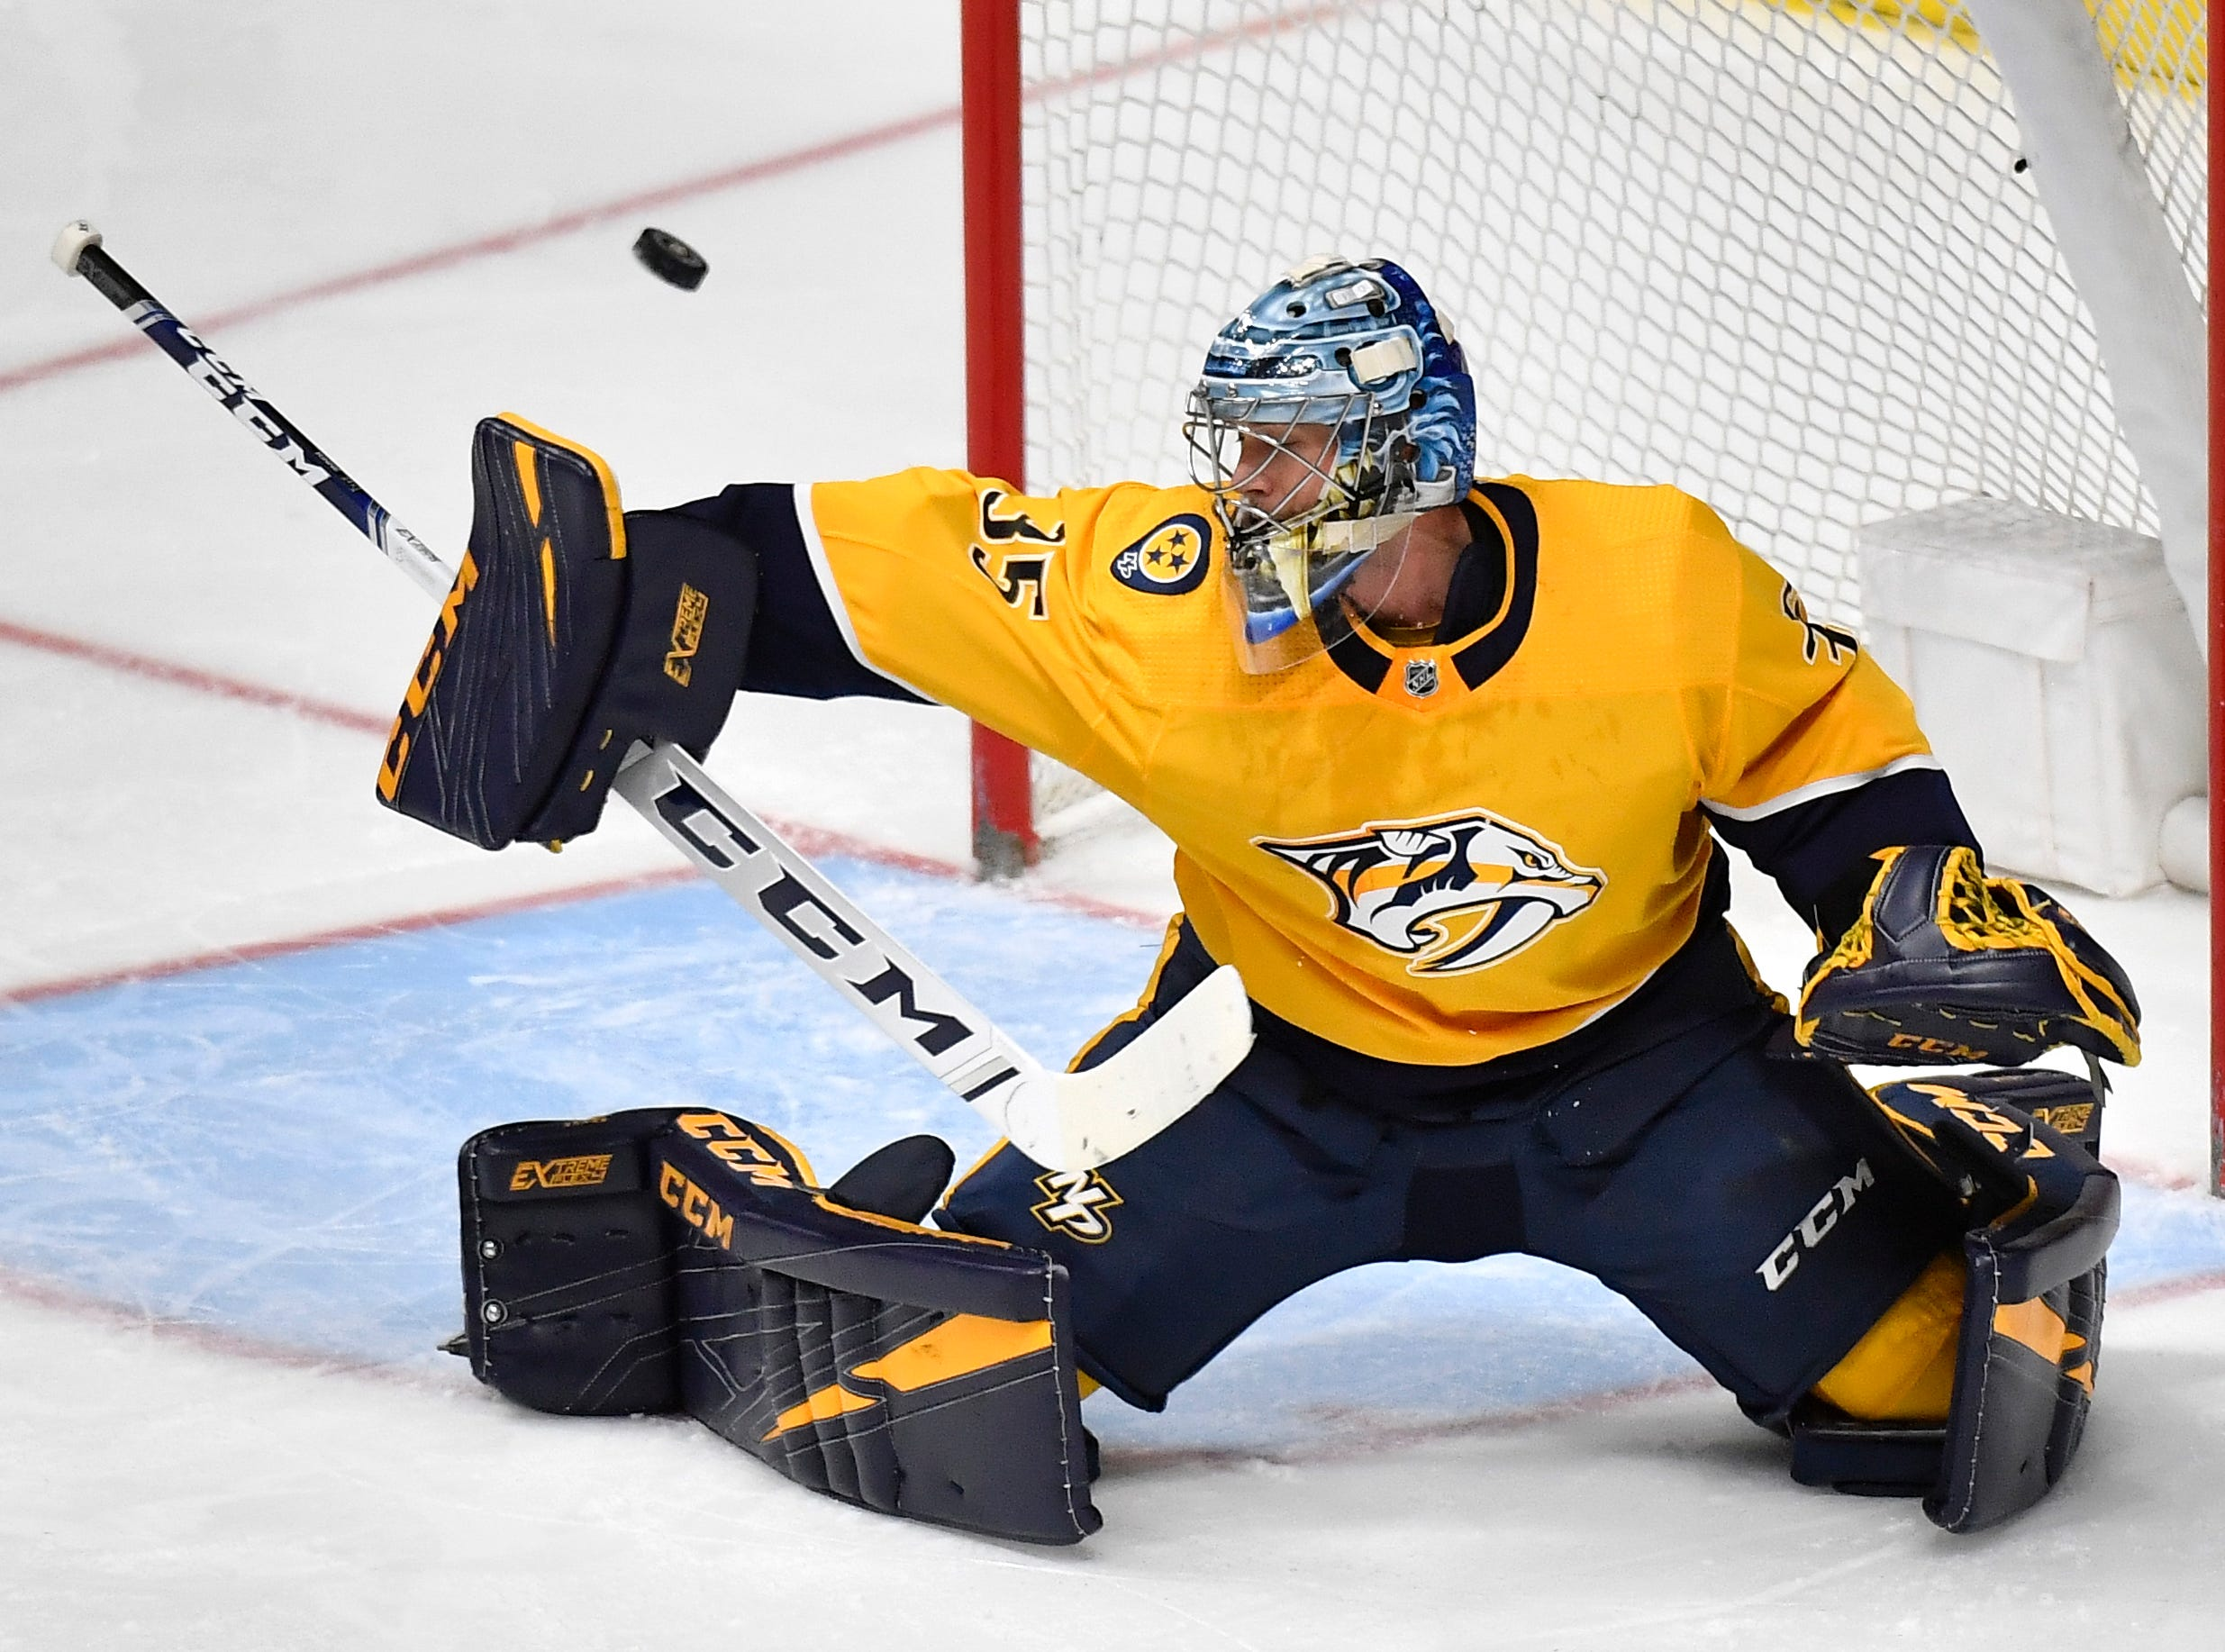 Nashville Predators goaltender Pekka Rinne (35) makes a stop during the second period of the divisional semifinal game at Bridgestone Arena in Nashville, Tenn., Wednesday, April 10, 2019.